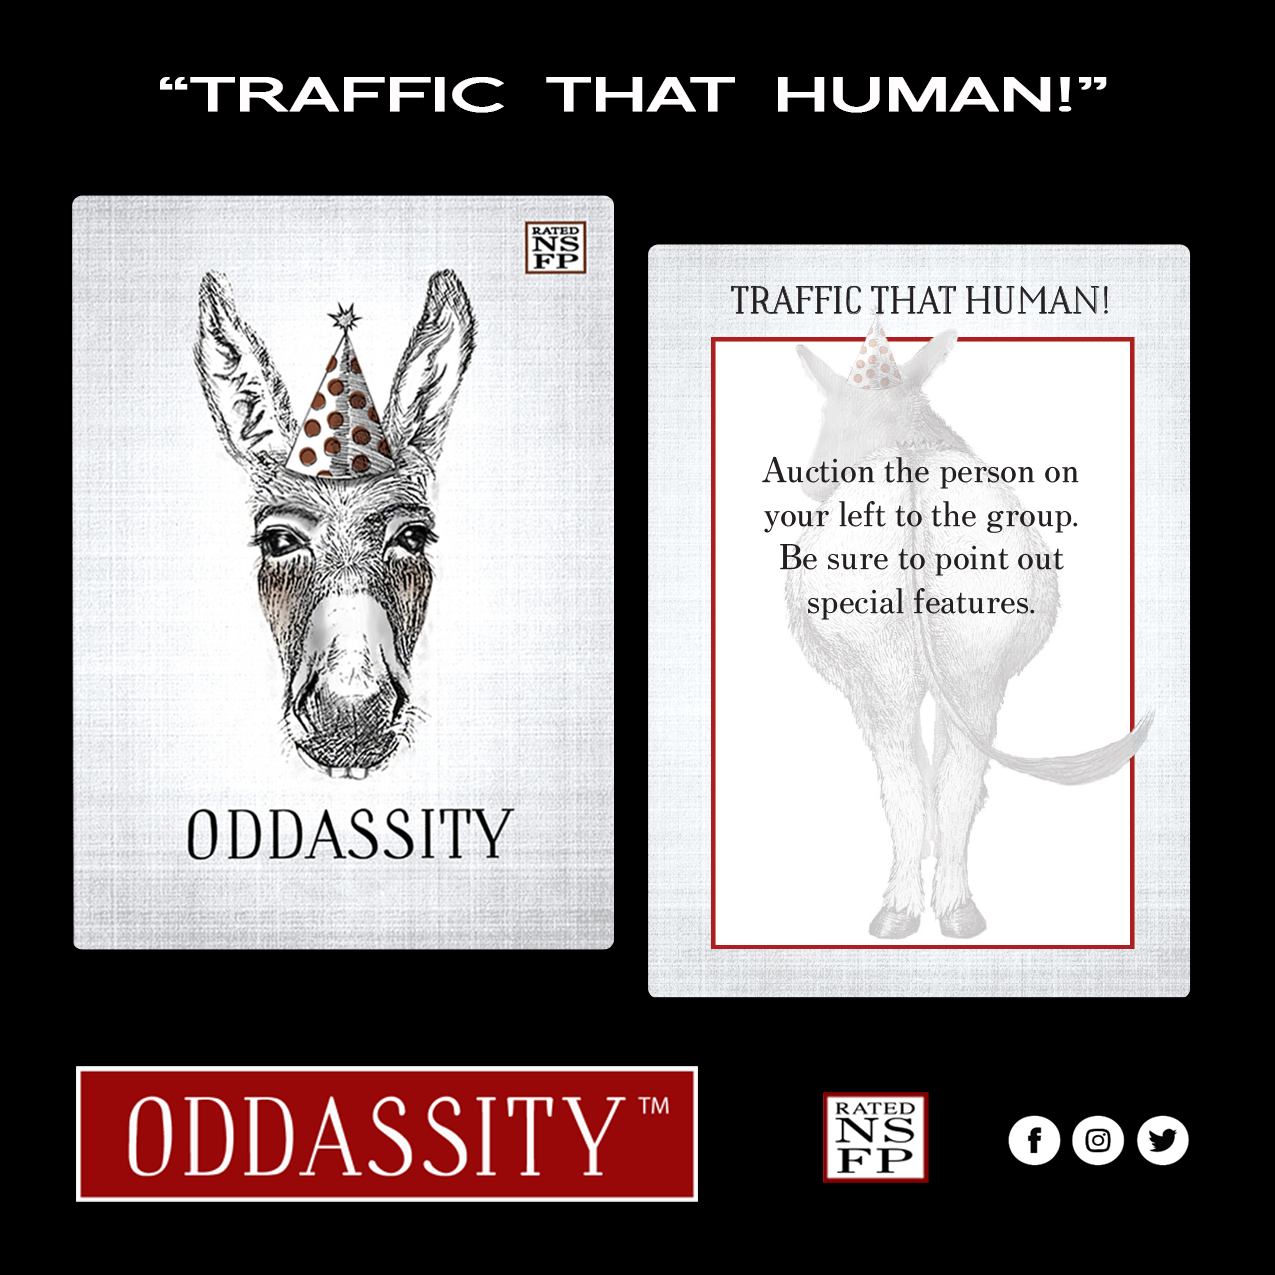 TRAFFIC THAT HUMAN!   Auction the person on your left to the group. Be sure to point out special features.